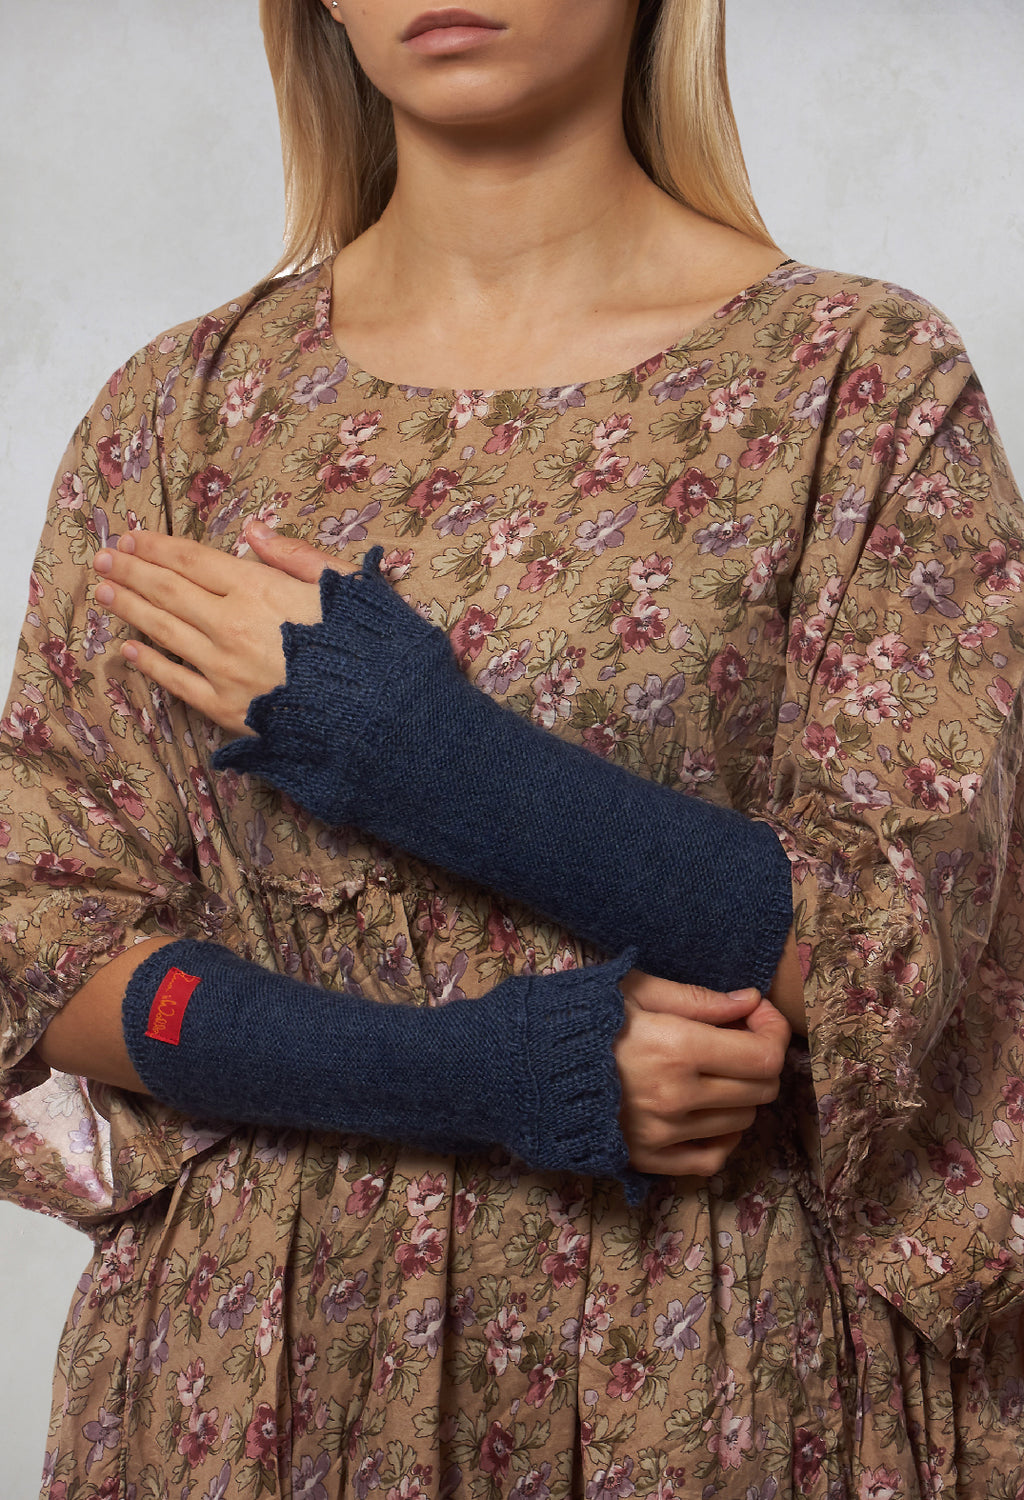 Knitted Cuffs in Blue